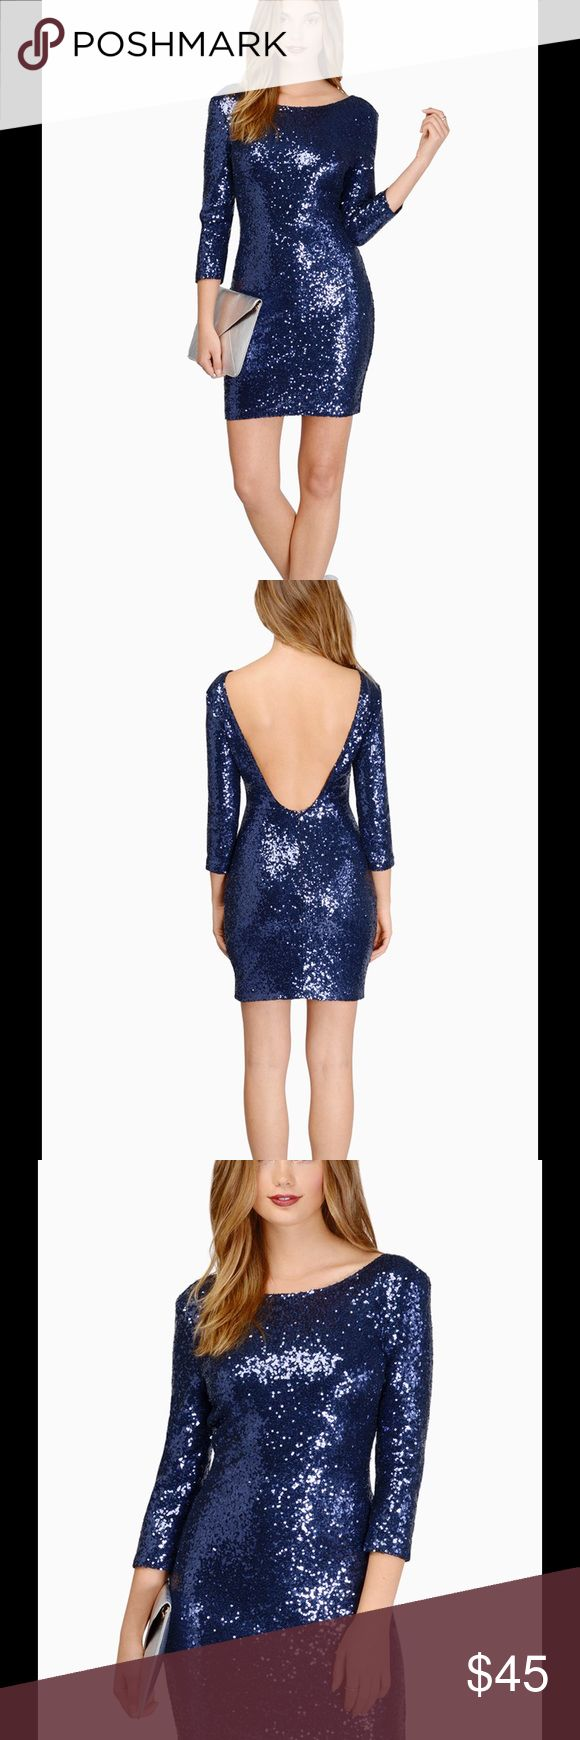 415 Best My Posh Picks Images On Pinterest 1 Amazing And Business Minimal Evia Pleated Dress Navy Check Xs Sparkle Sequin Boutique Dressessequin Dressnavy